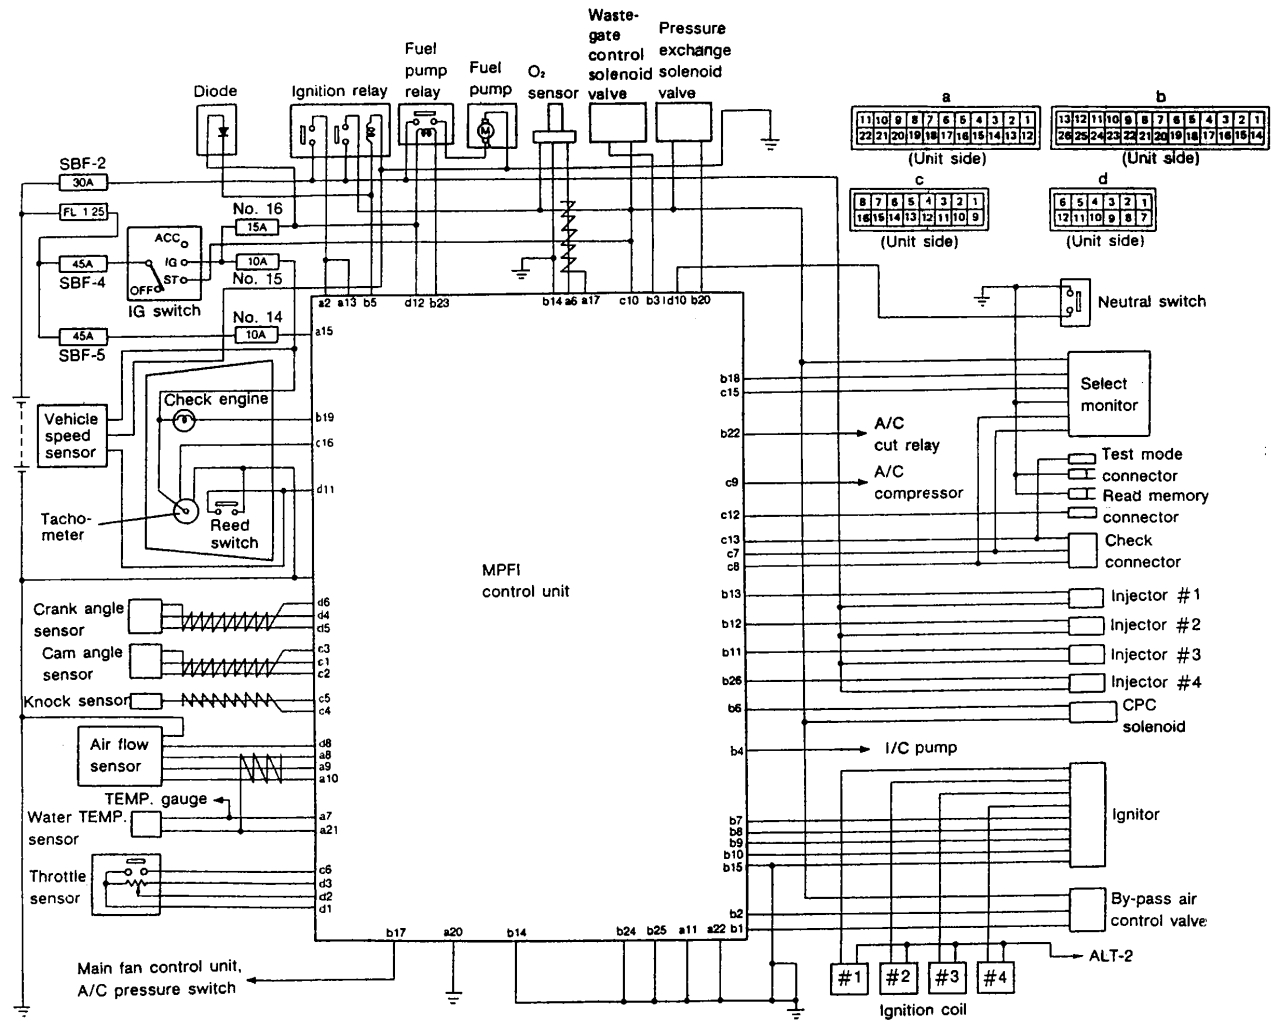 1997 subaru engine diagram wiring diagrams  2012 subaru impreza stereo wiring #14